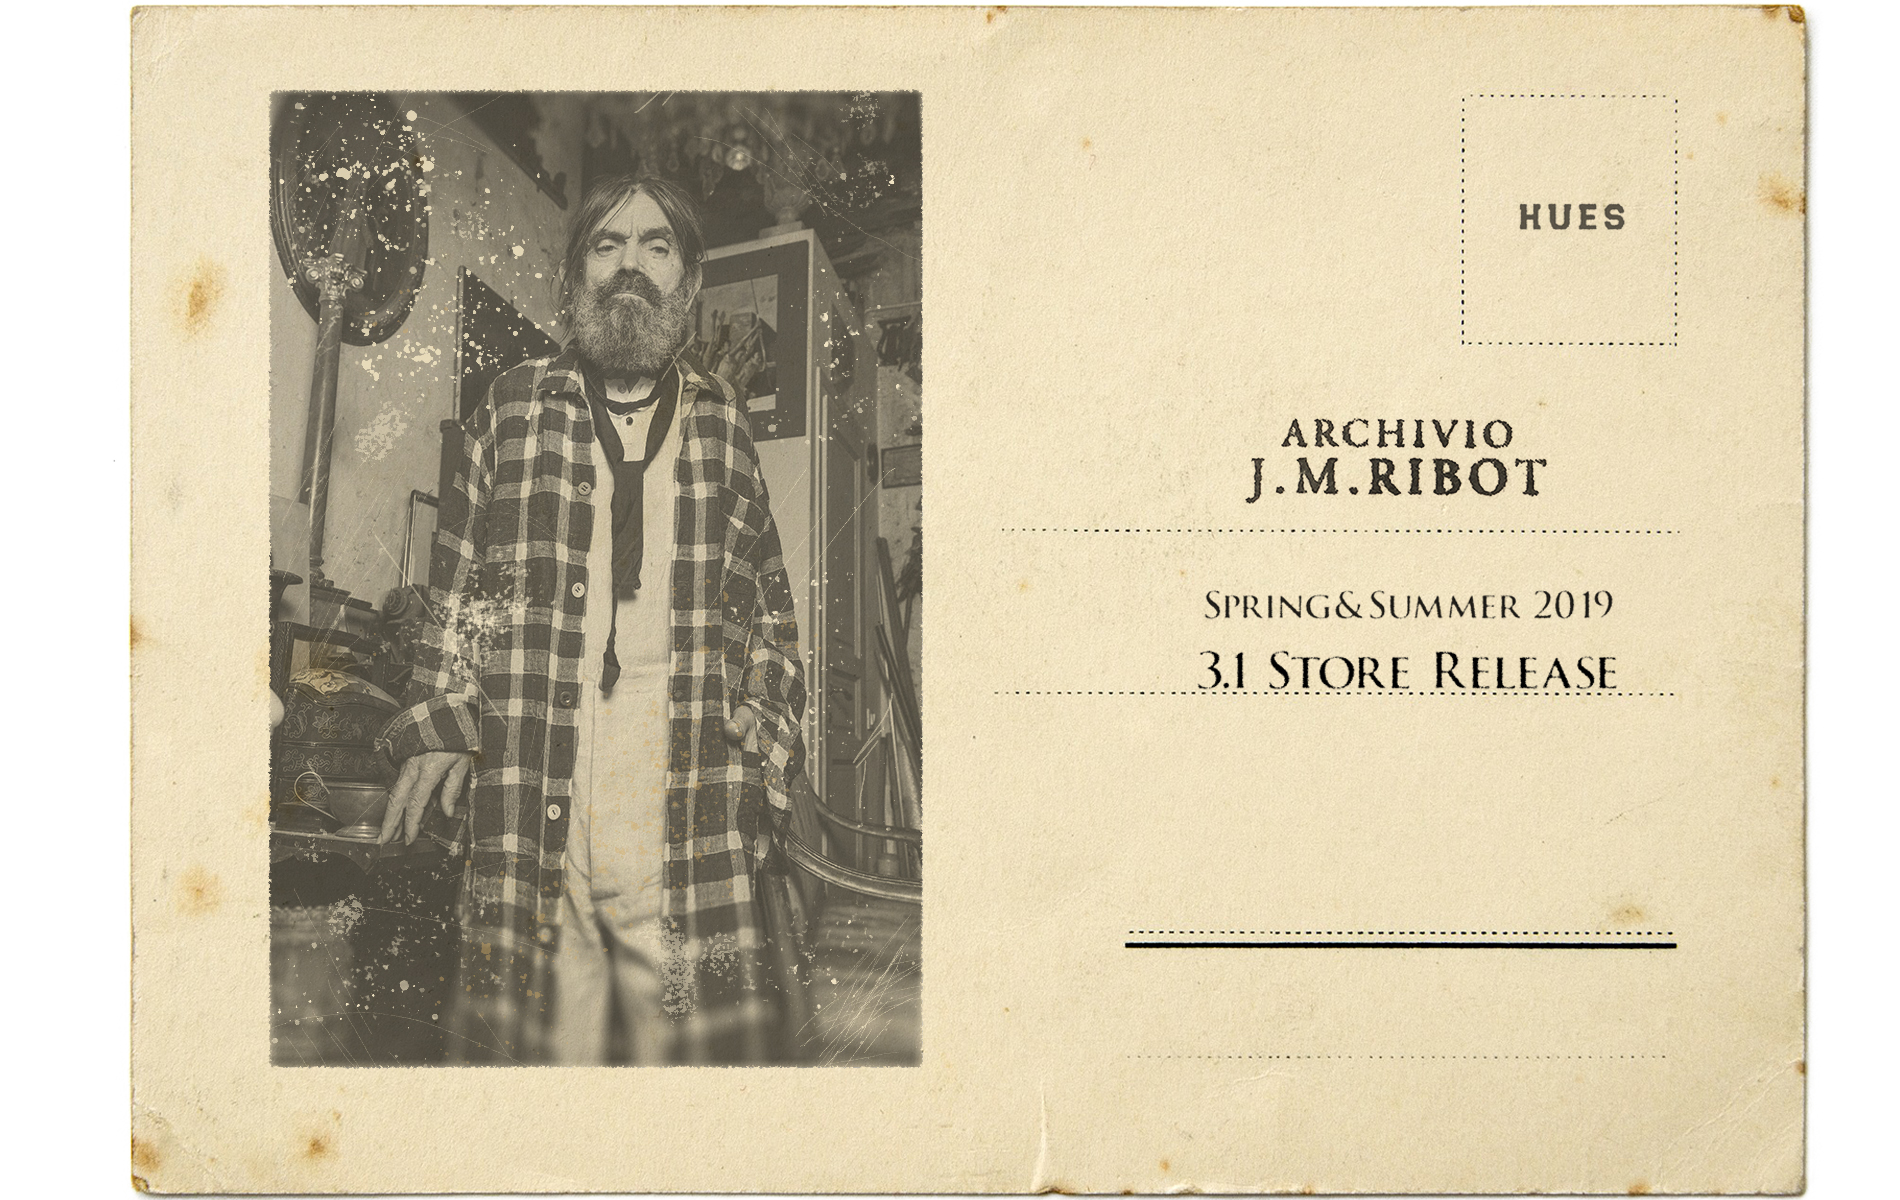 ARCHIVIO J.M.Ribot  SPRING&SUMMER 2019  3.1 Store Release